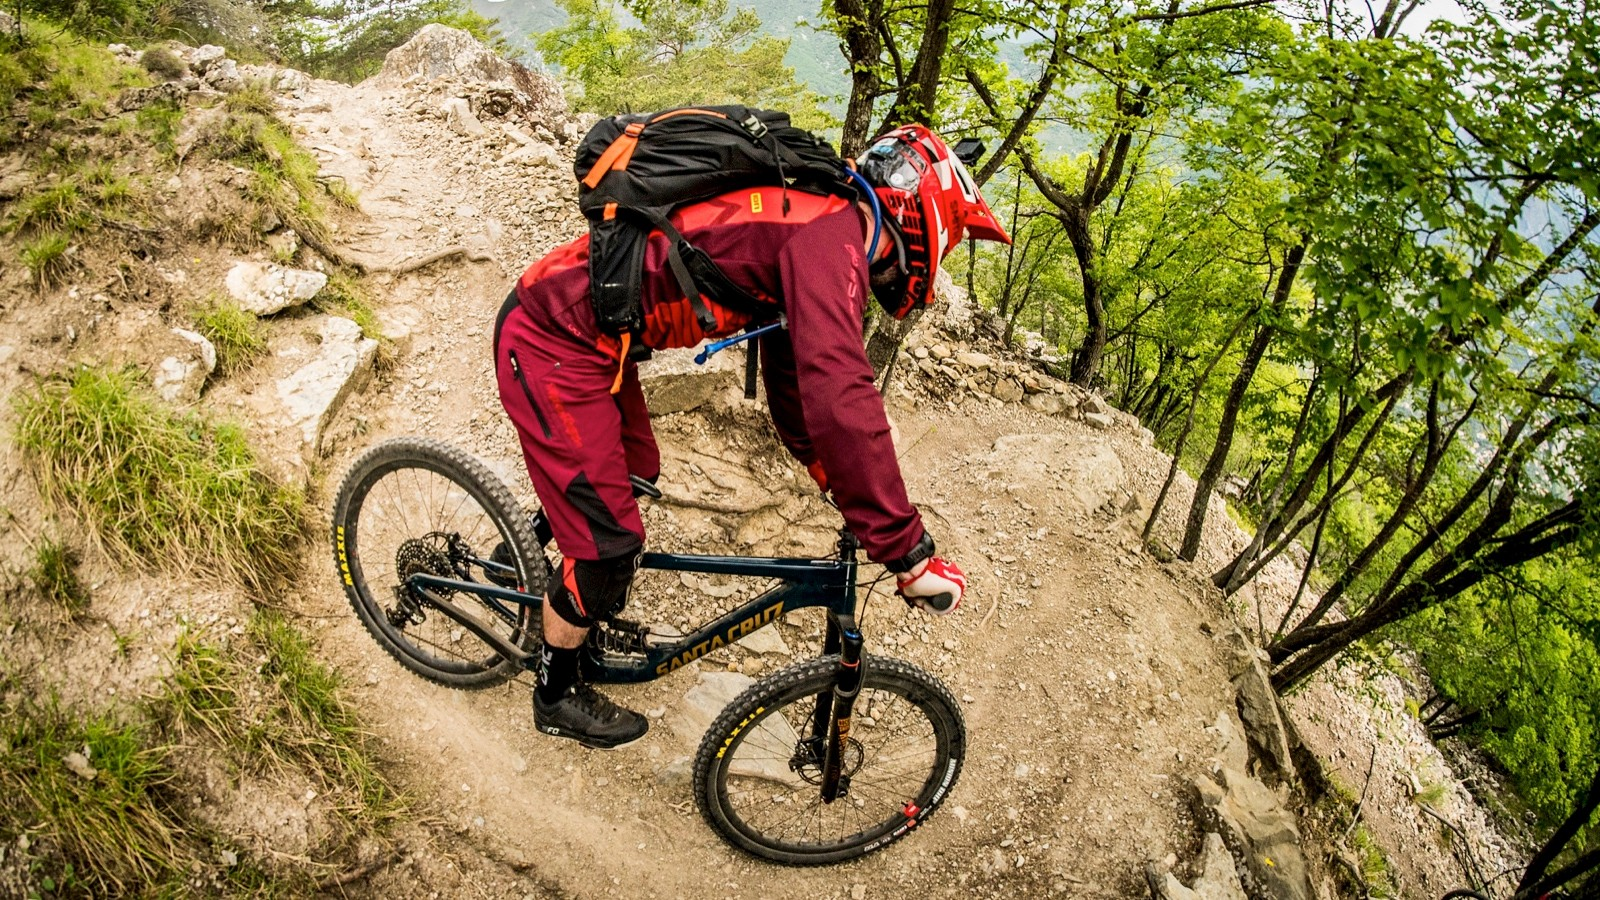 Rocky, steep and rough. The Maritime Alps offer some seriously good terrain to really get to grips with a bike like the Nomad